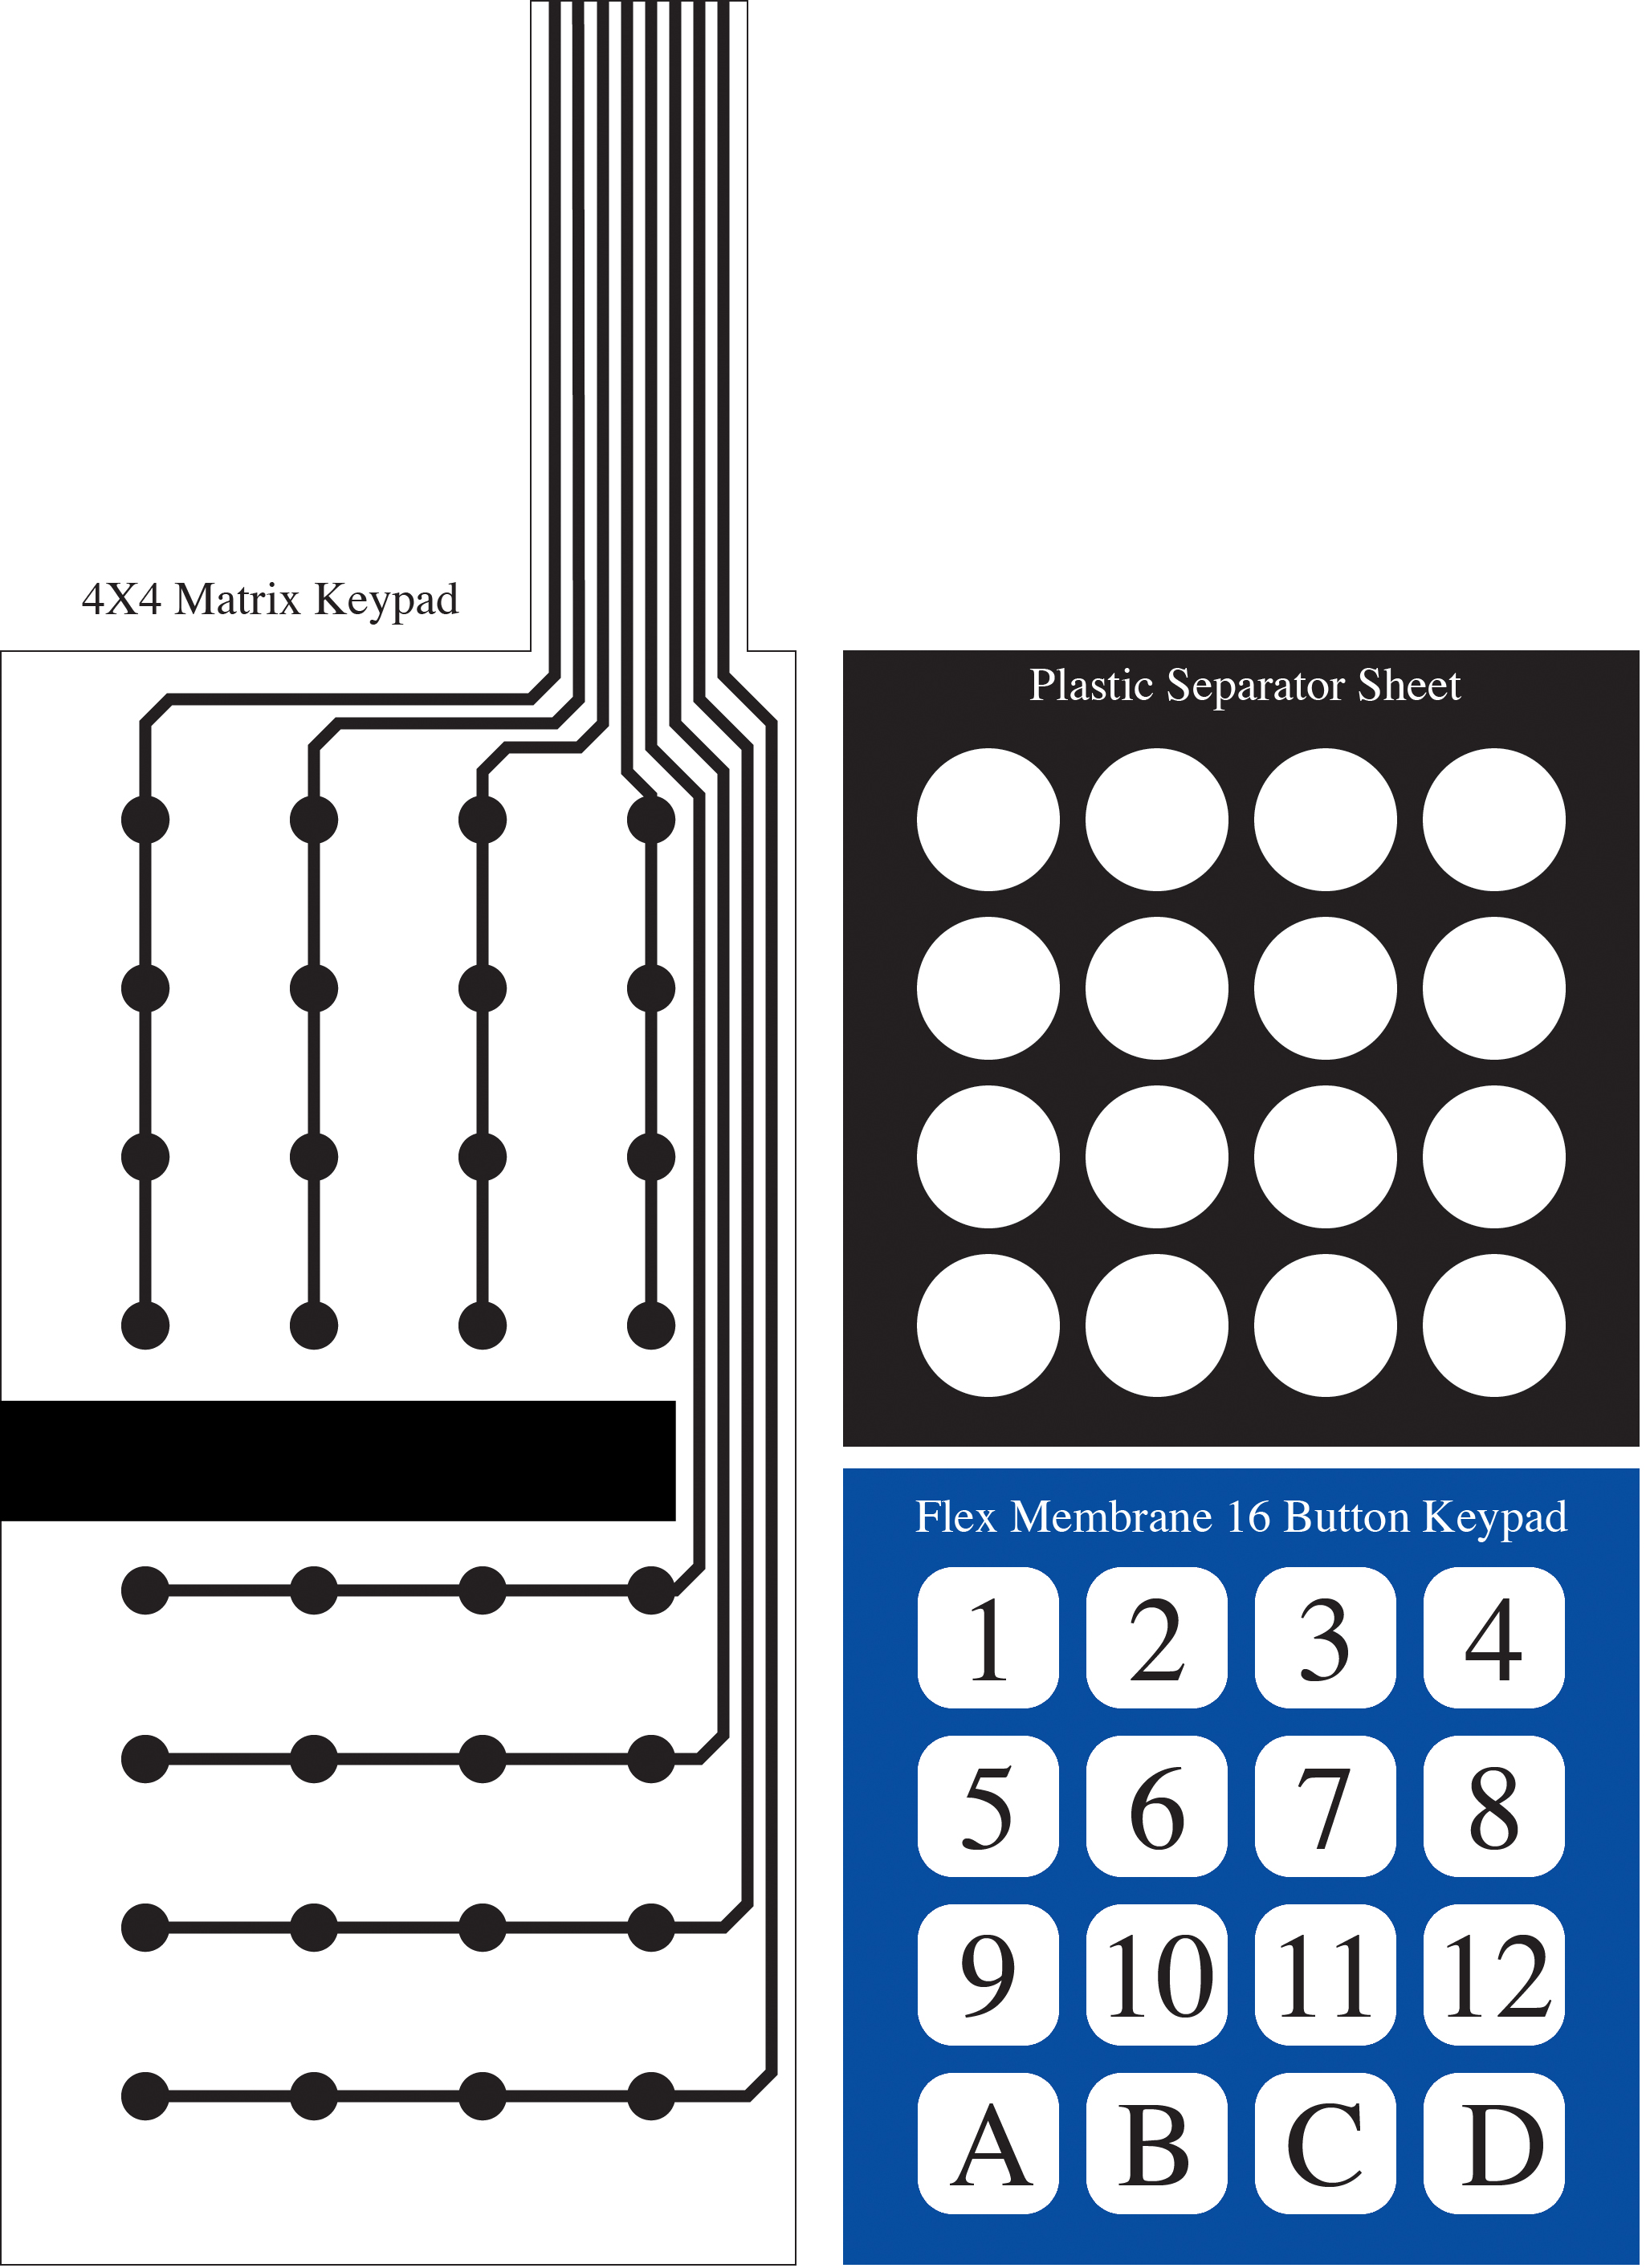 Pcb Fab In A Box The 8min Circuit Board System Flexible Printed Fpc Is Type Of Made Flex Membrane Keypads Can Be Using This Layout Folding It Half With Simple Spacer Out Piece Overhead Transparency Acetate Which